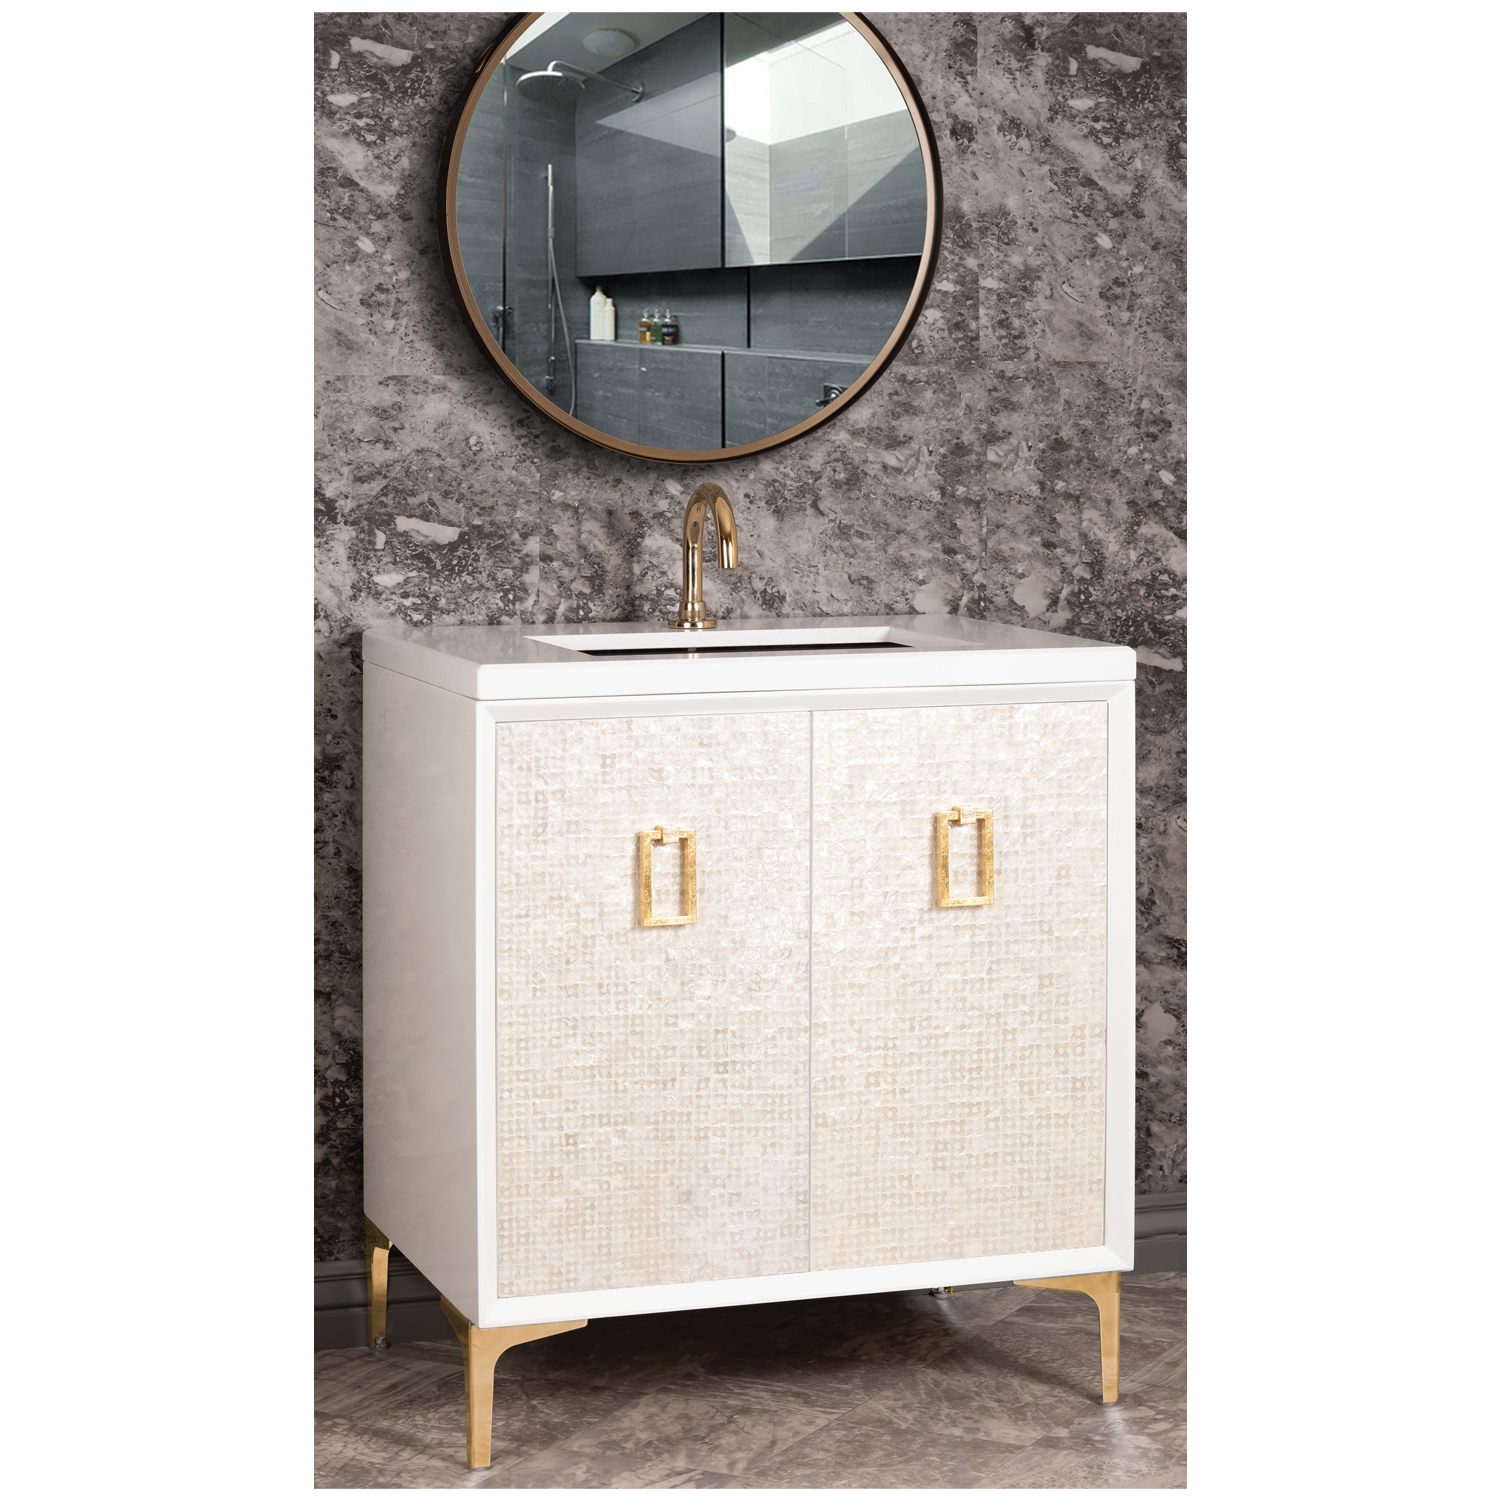 "VAN30W-005  30"" White Mother of Pearl with Coach - Shown with PB (Polished Brass Finish)"